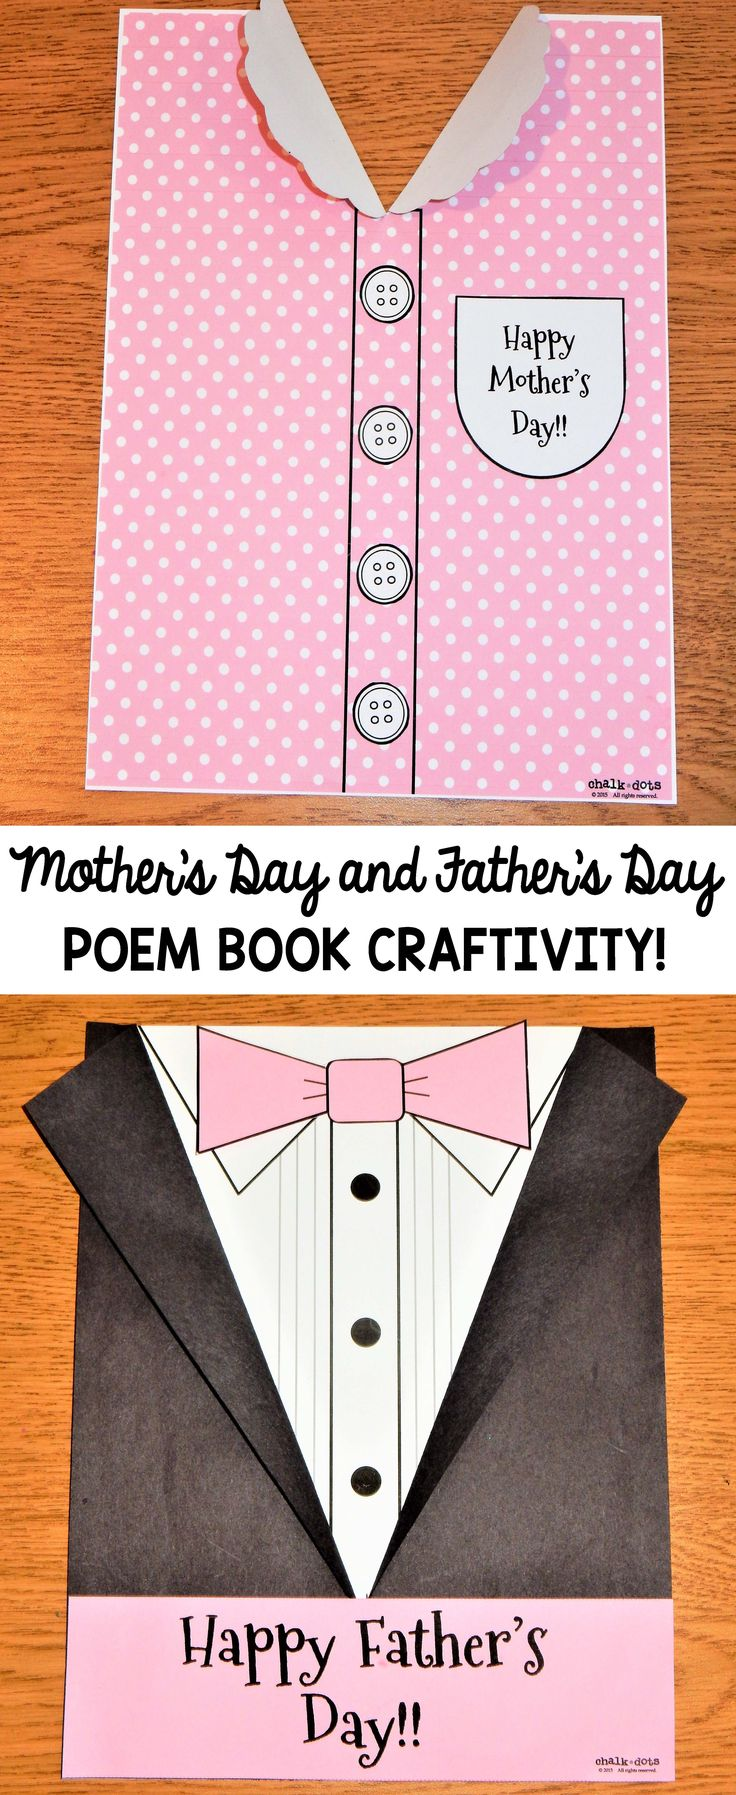 Mothers day coloring sheets for sunday school - Mother S Day Father S Day Poem Book Craftivity